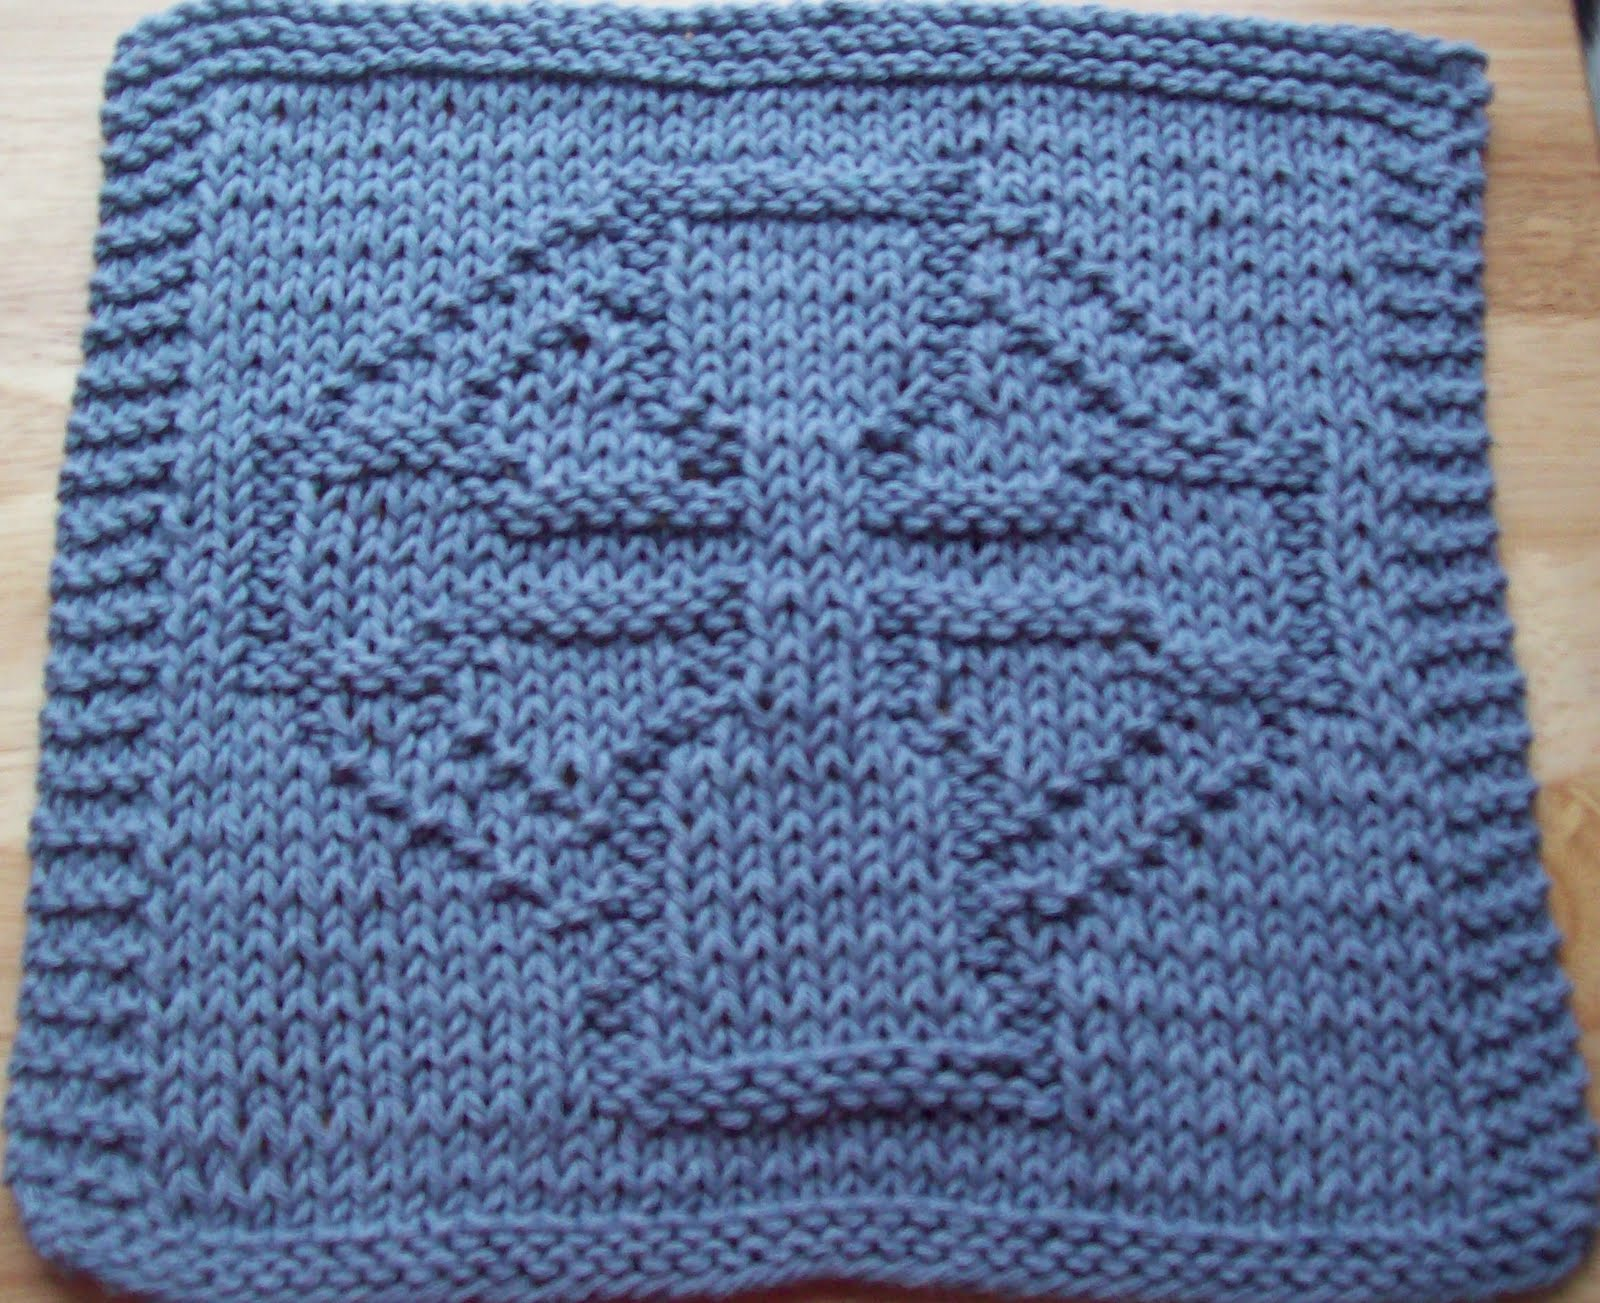 DigKnitty Designs: Celtic Cross Knit Dishcloth Pattern